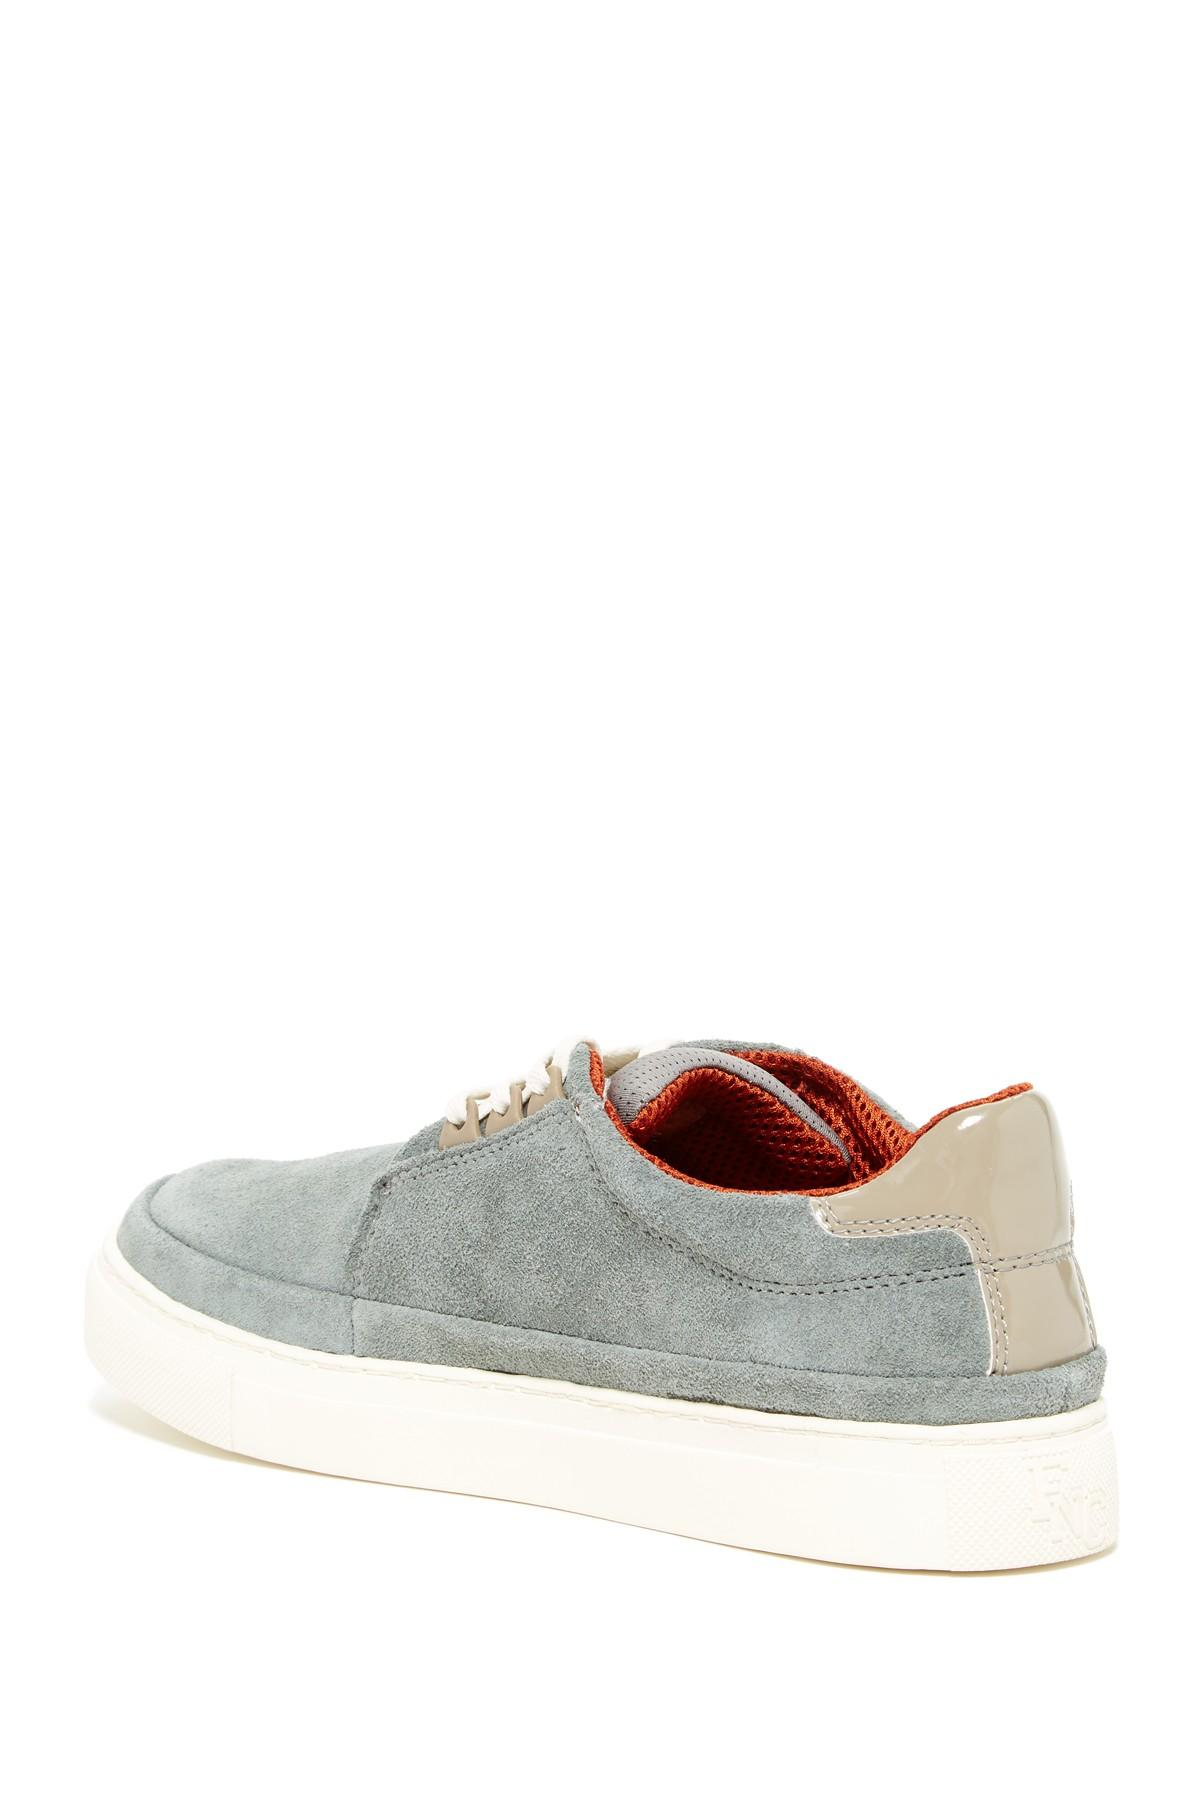 Fish n chips chipped sneaker in gray lyst for Fish and chips shoes